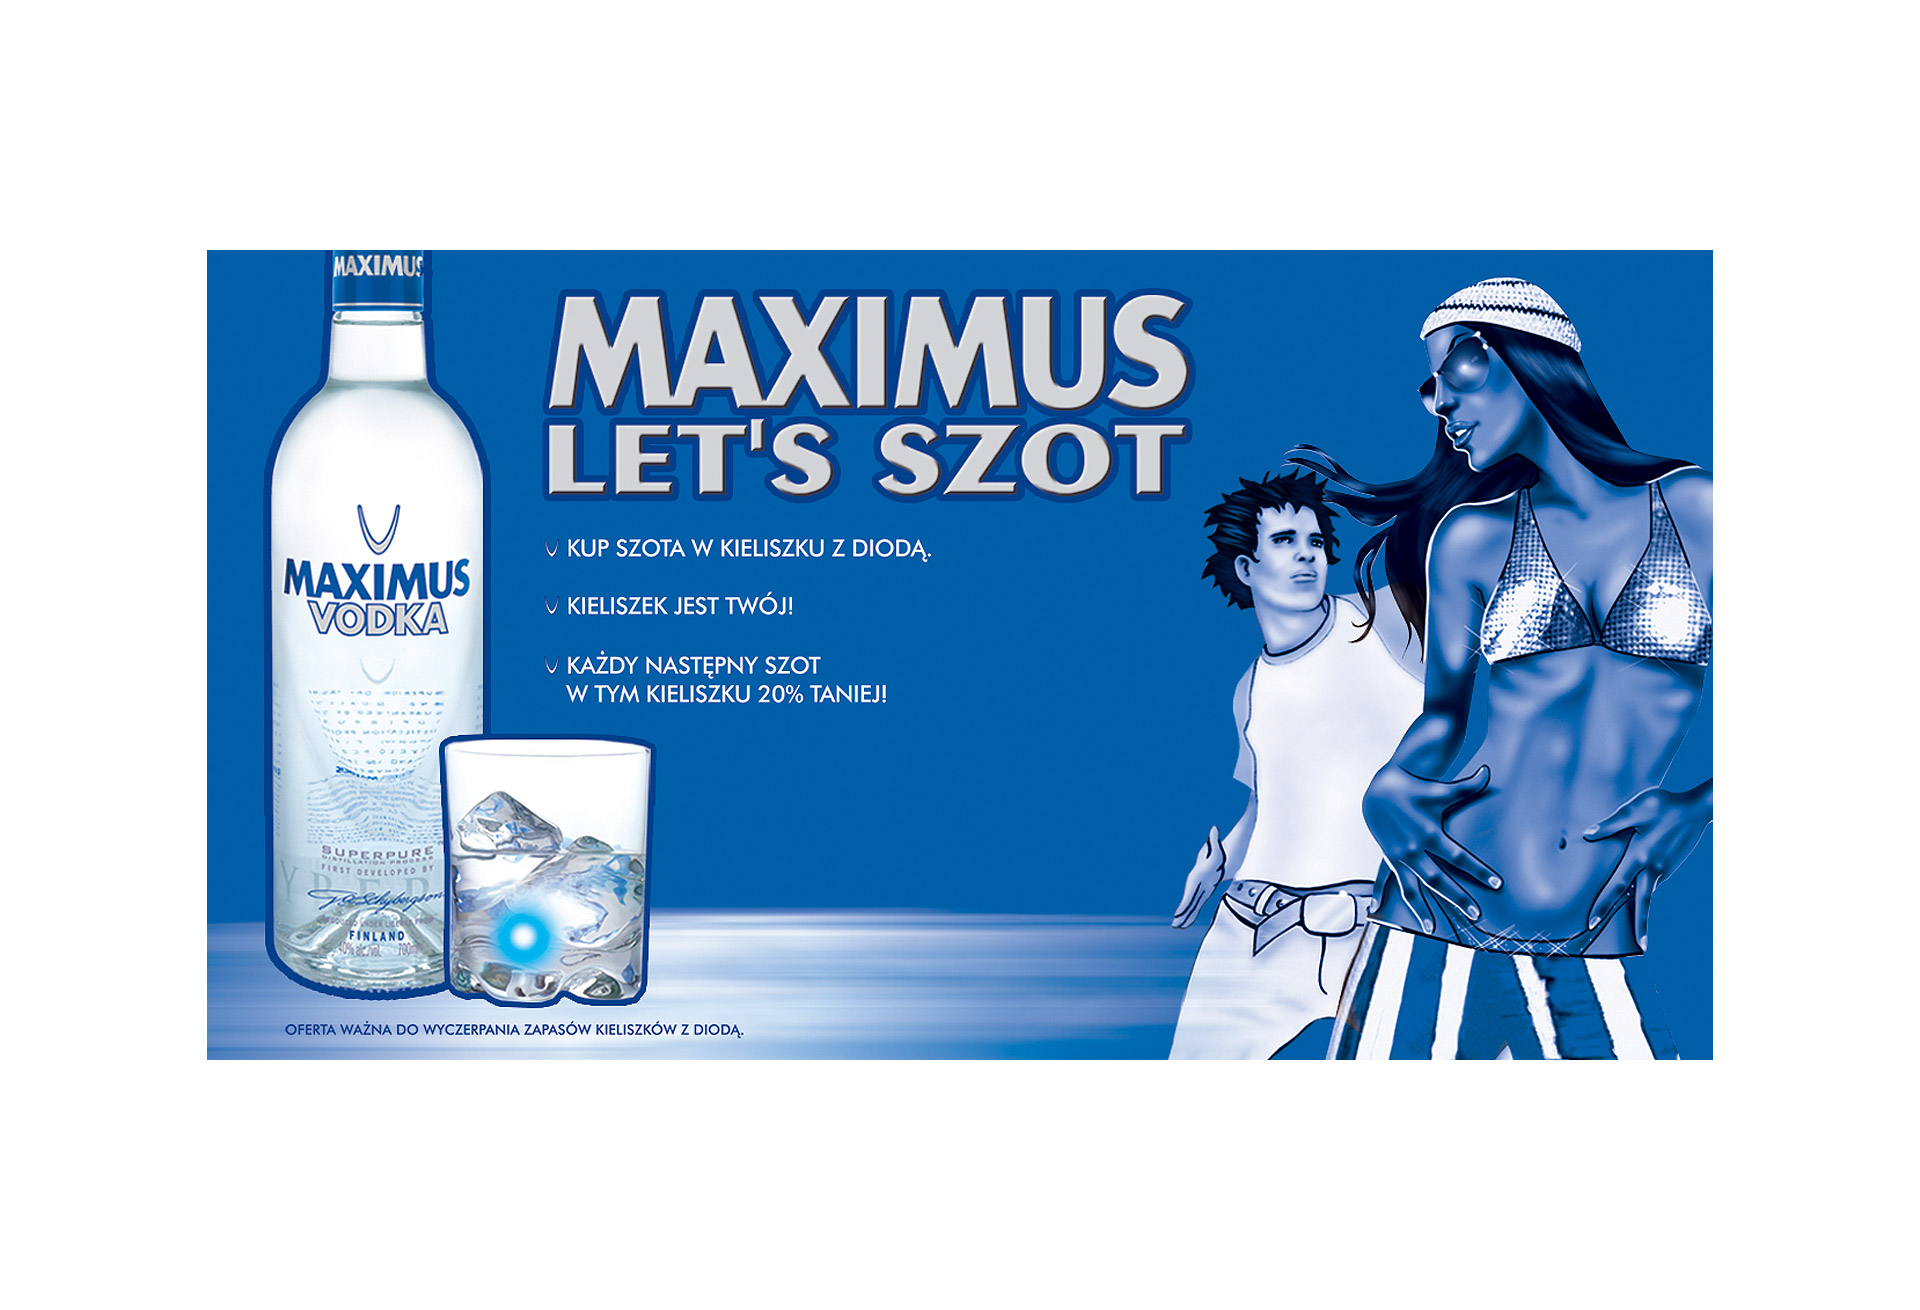 maximus-vodka-plakat